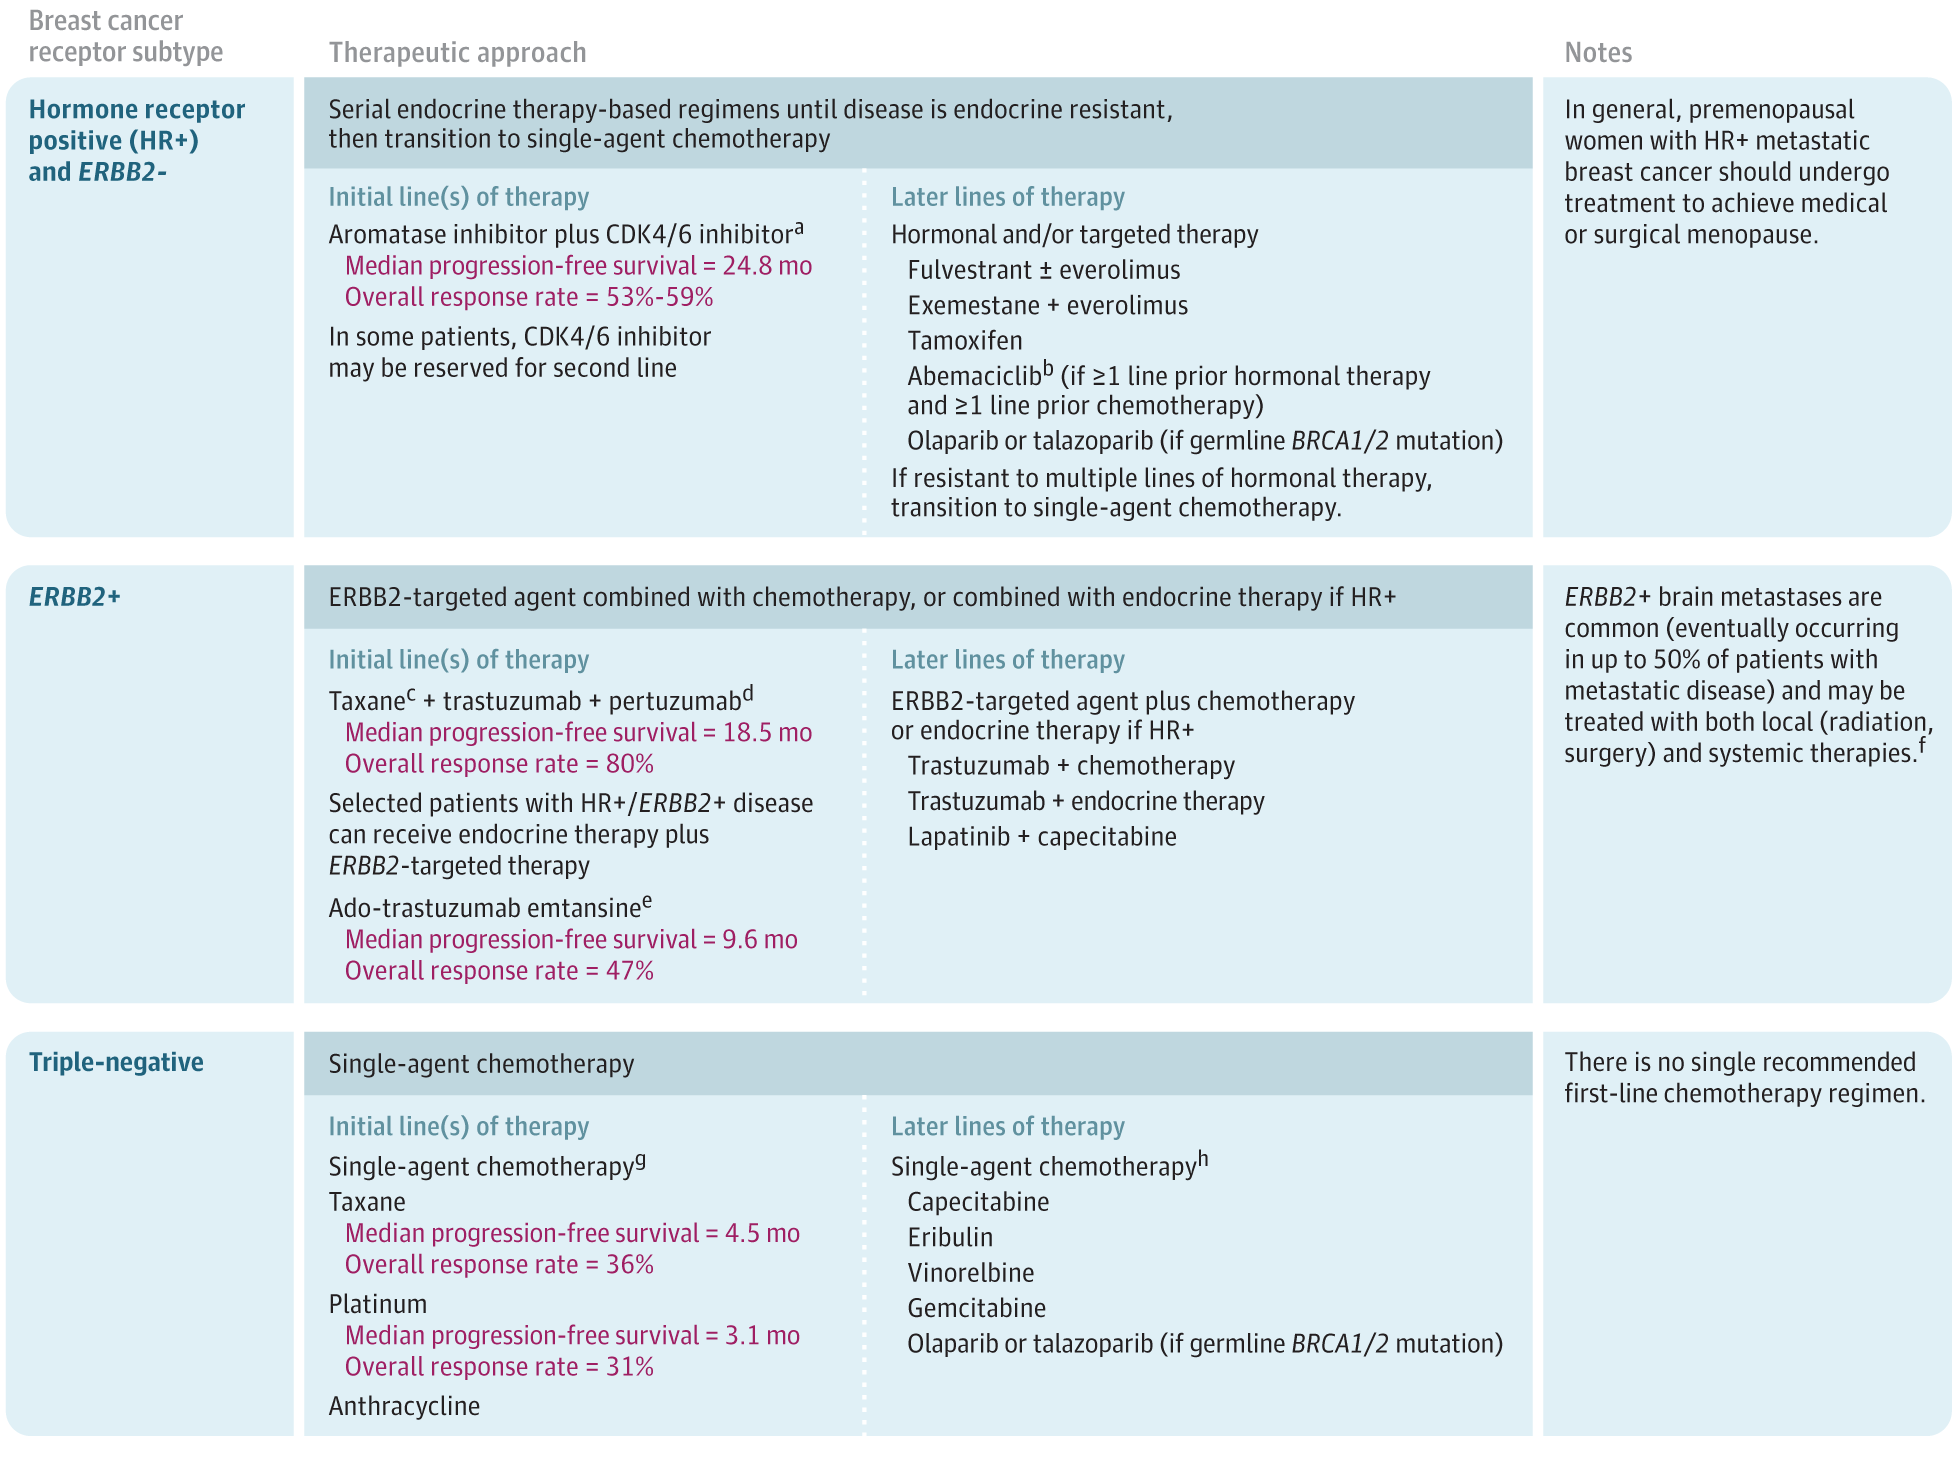 Breast Cancer Treatment A Review Breast Cancer Jama Jama Network